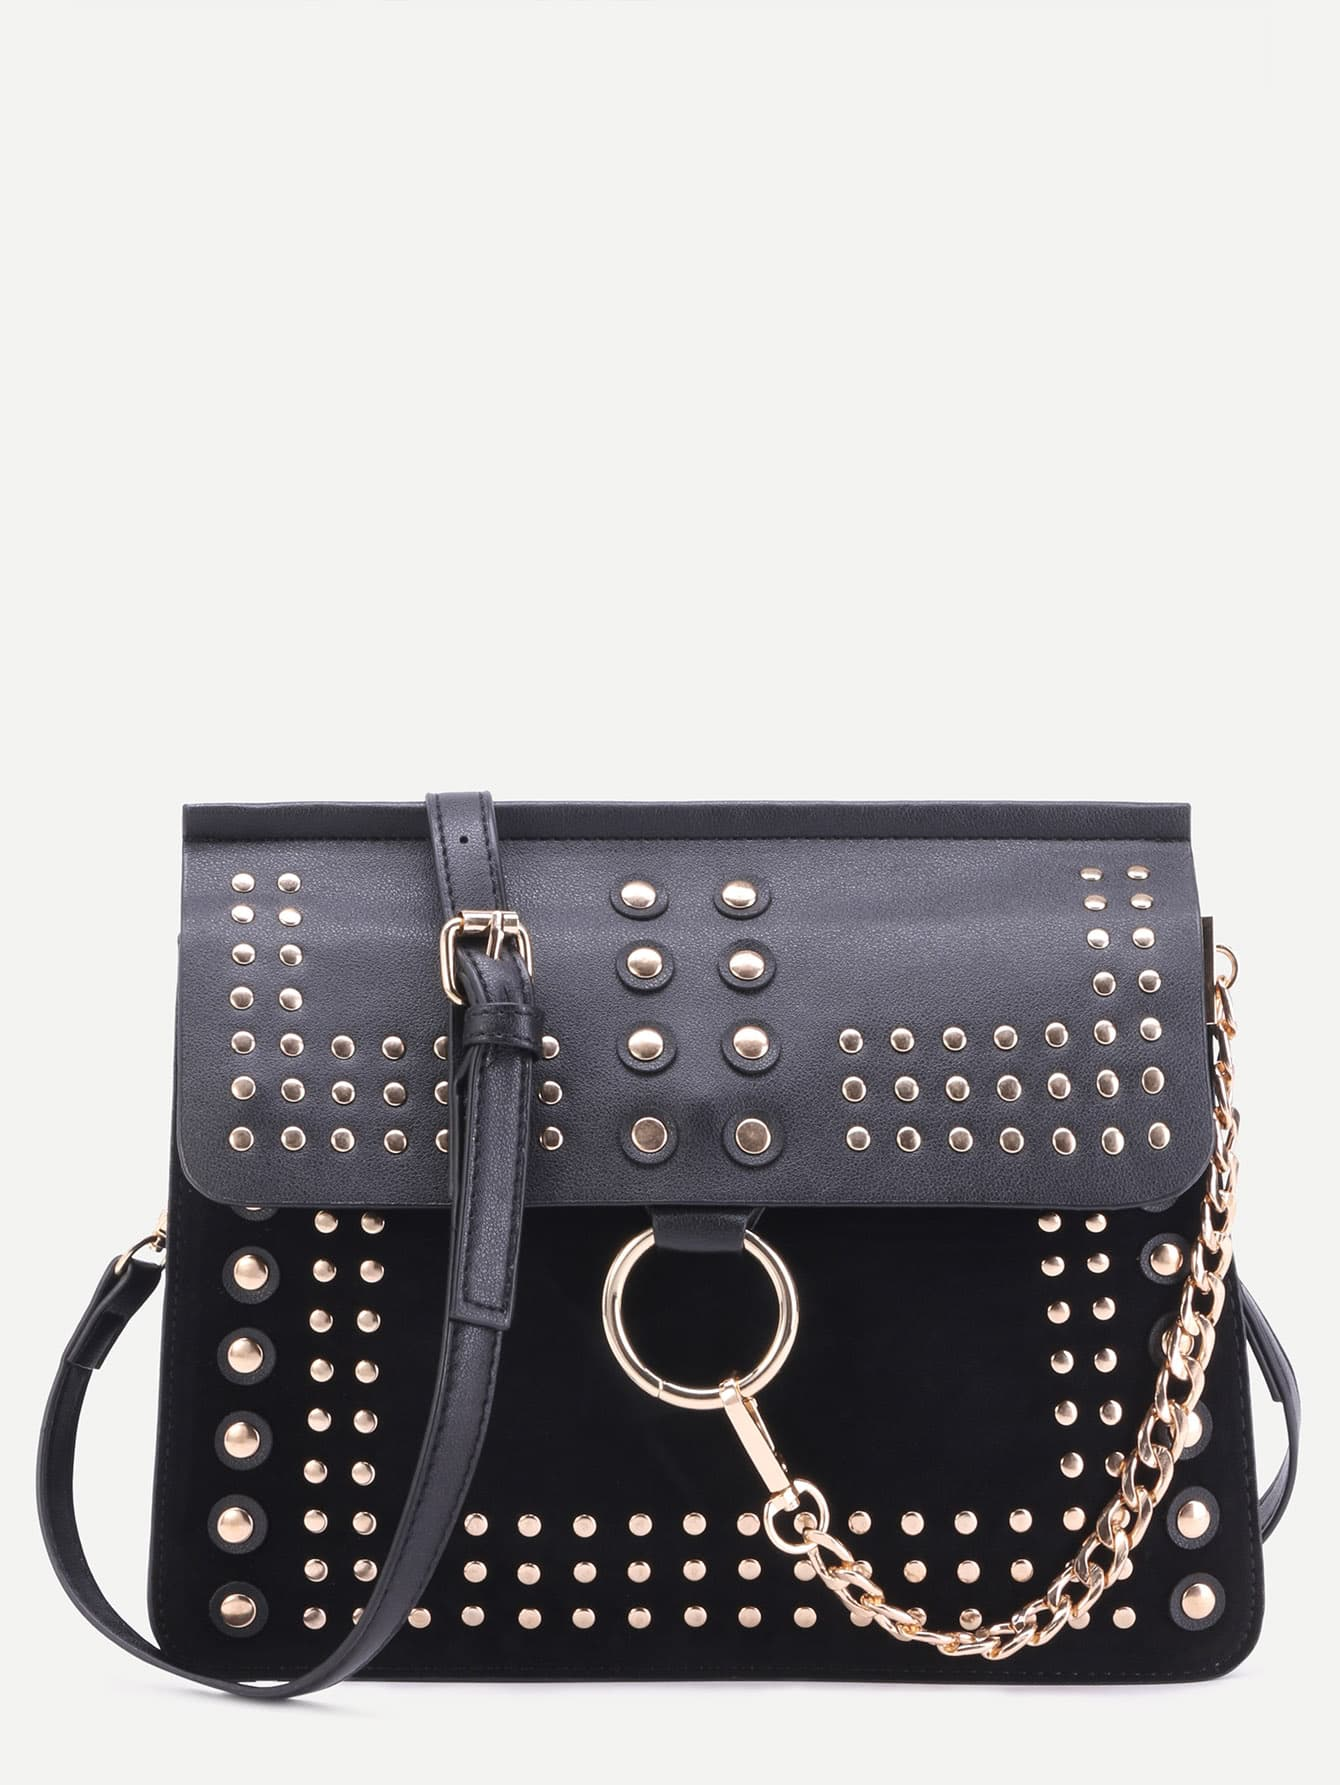 black bag with gold studded details